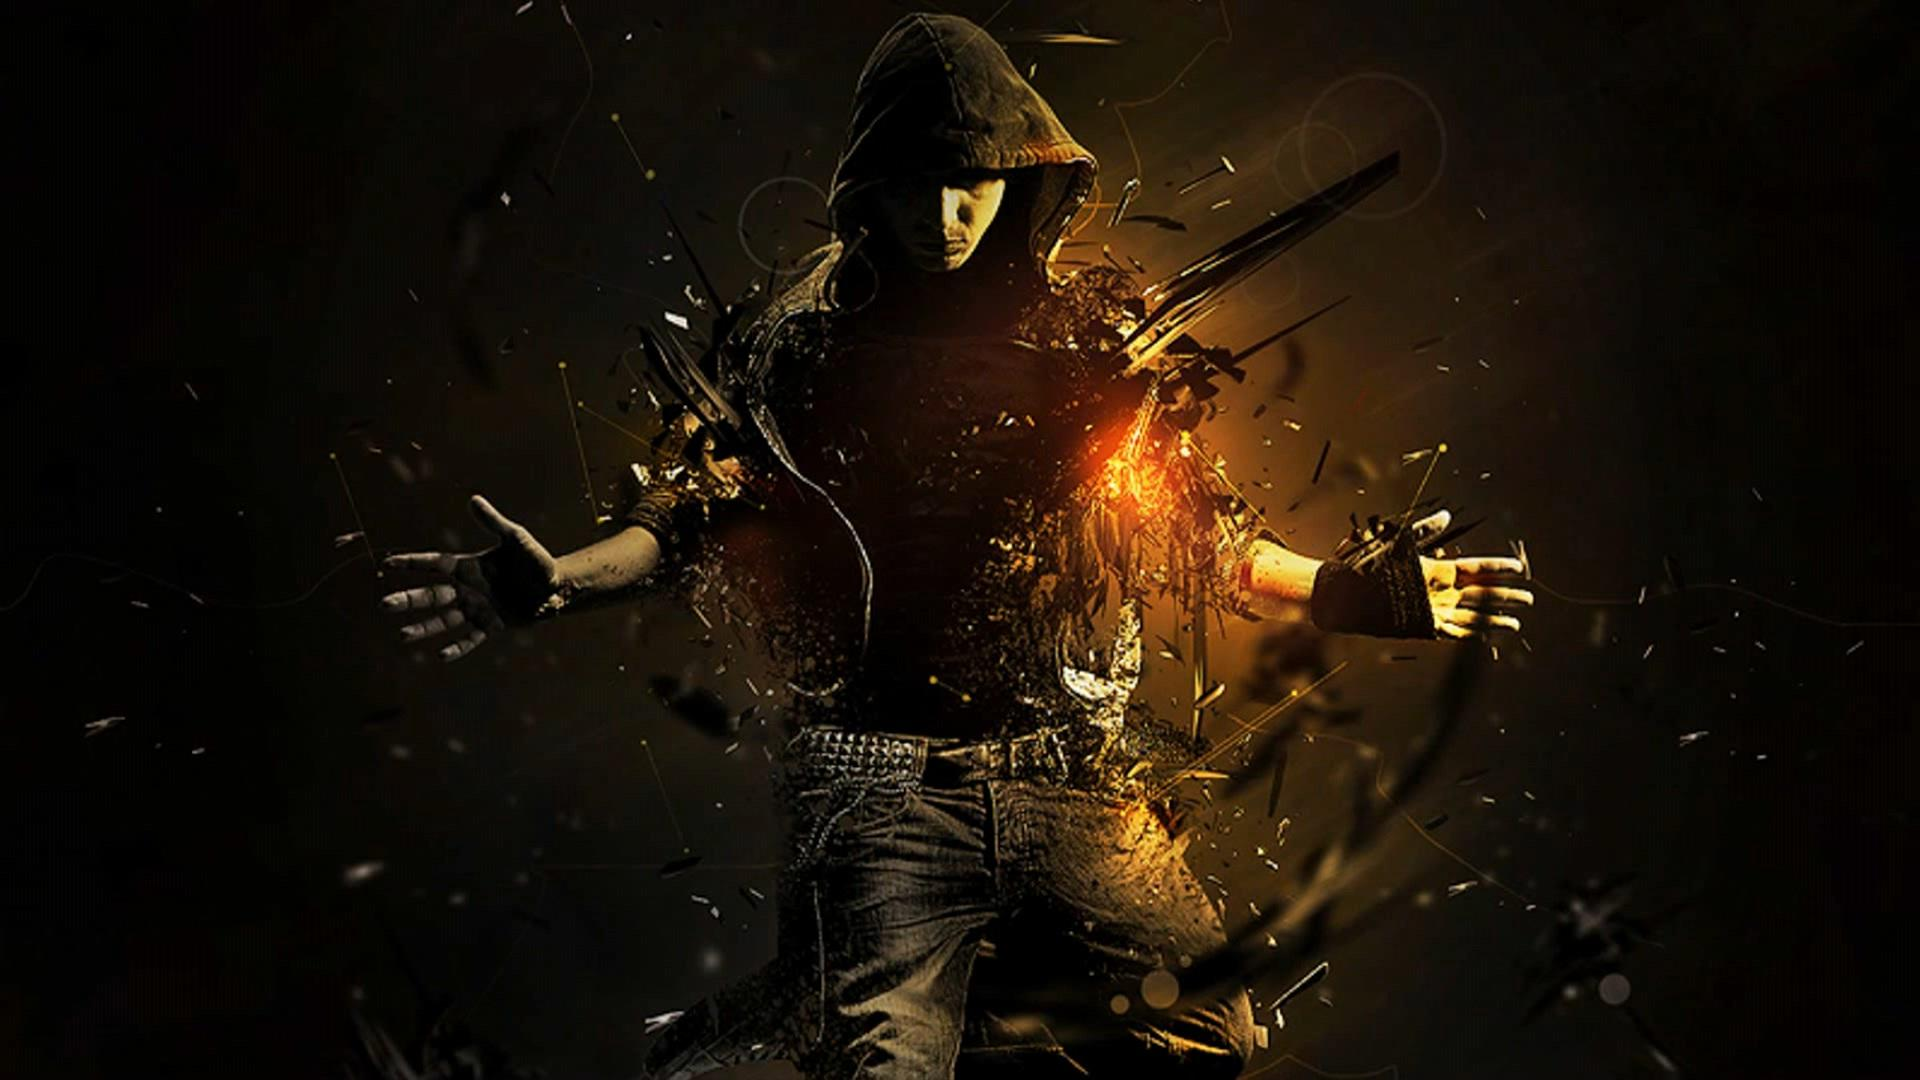 Wallpapers For Cool Wallpapers For Boys Laptop 1920x1080